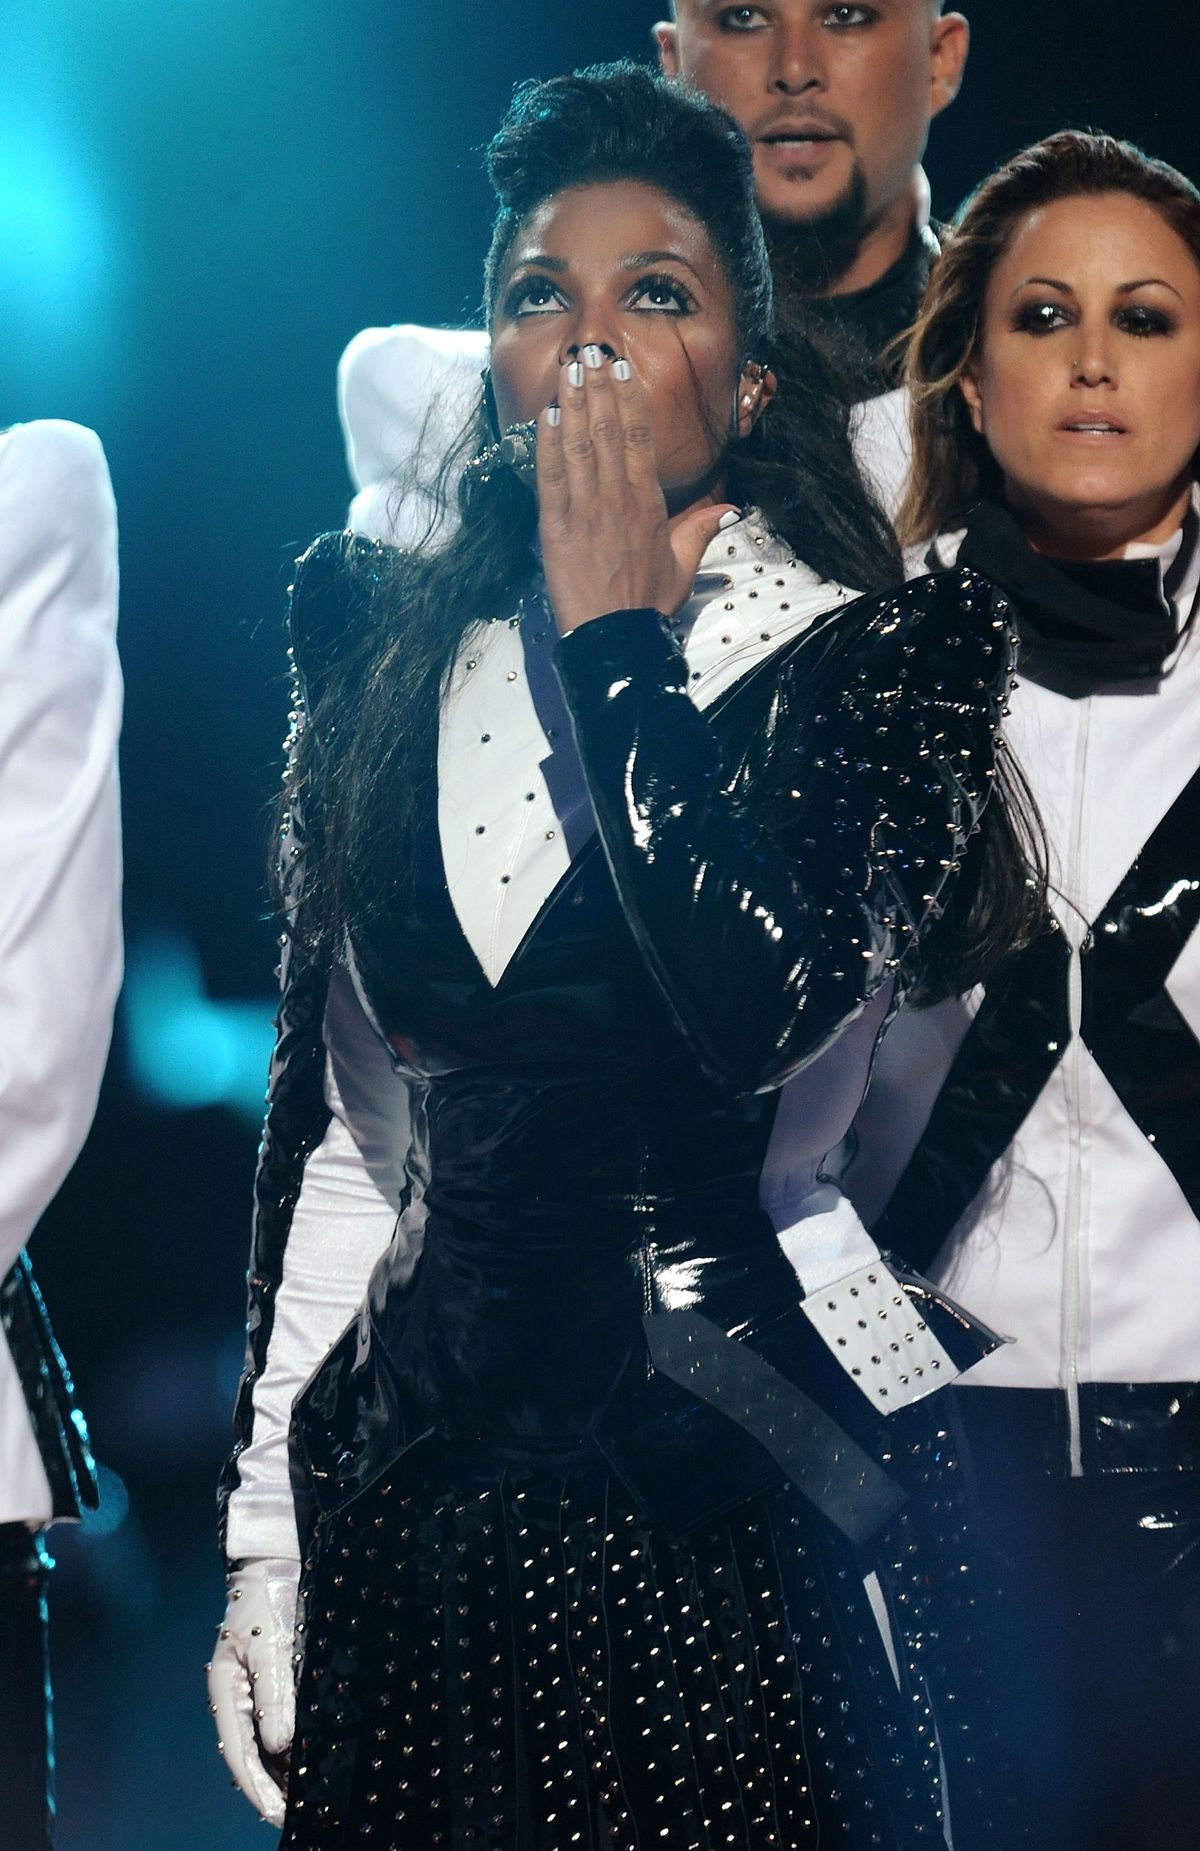 NEW YORK - SEPTEMBER 13: Janet Jackson performs onstage during the 2009 MTV Video Music Awards at Radio City Music Hall on September 13, 2009 in New York City. (Photo by Kevin Mazur/WireImage)